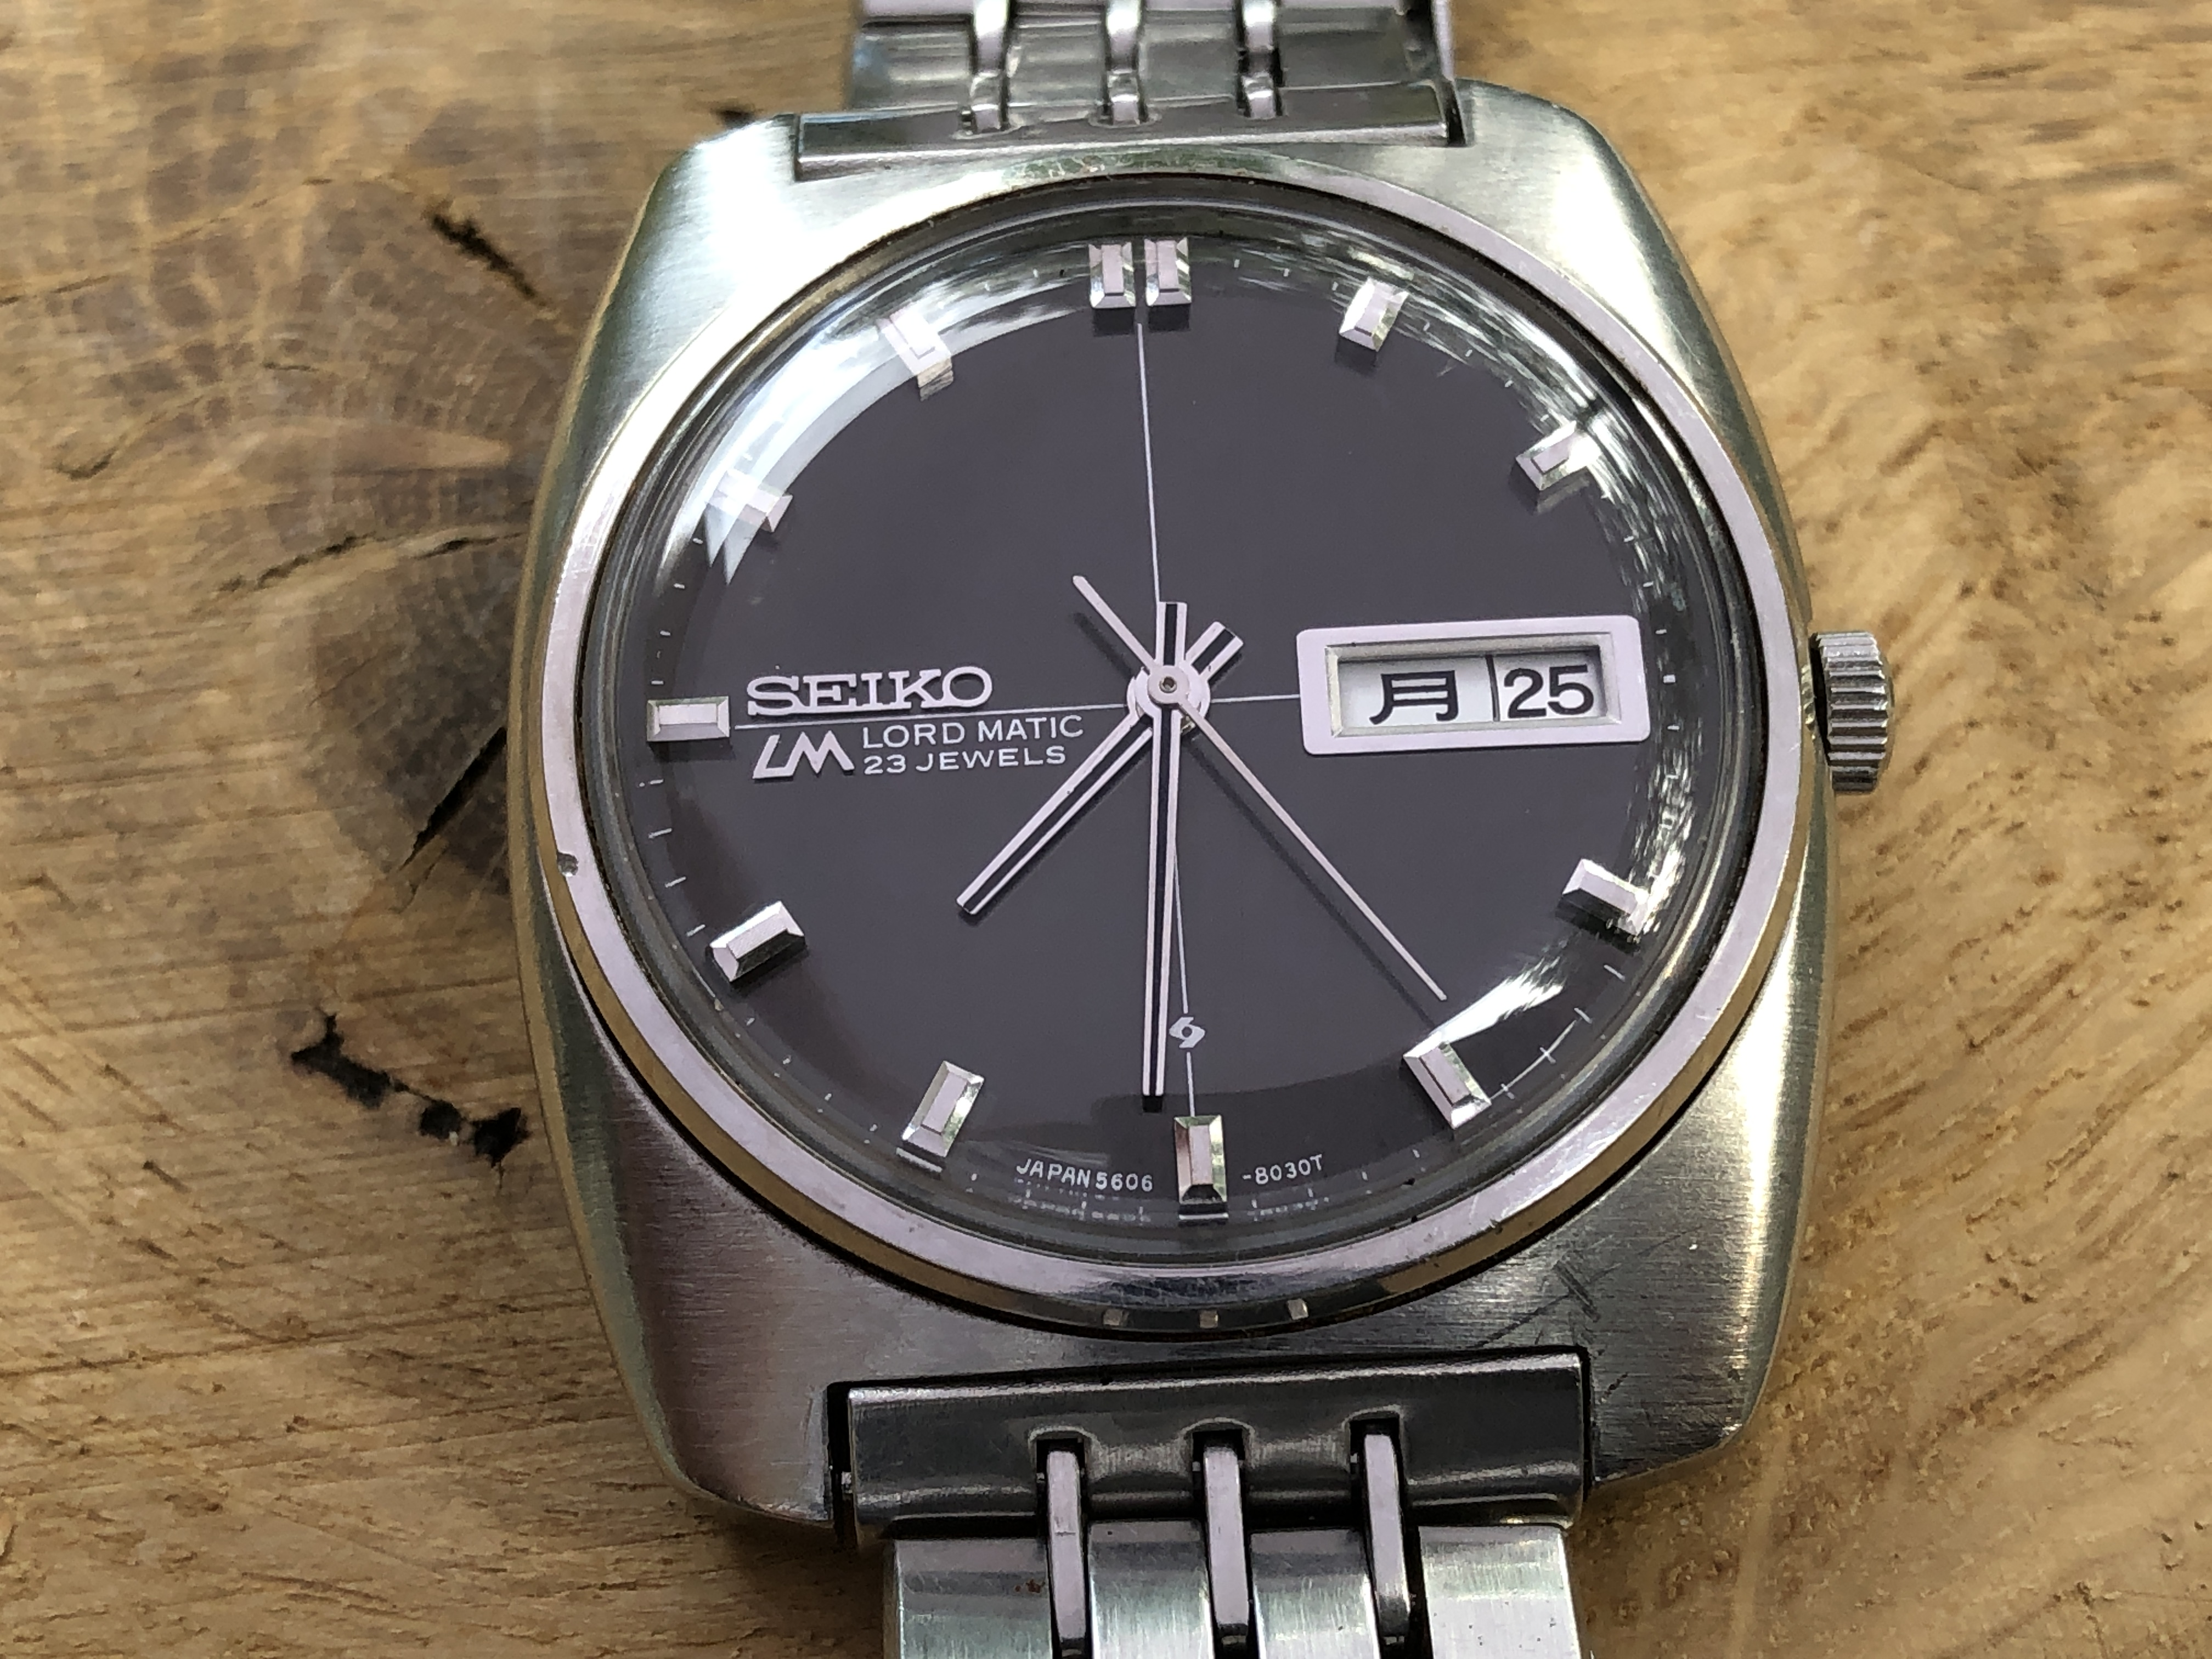 Seiko Lord-Matic 5606-8010 56LMW-302